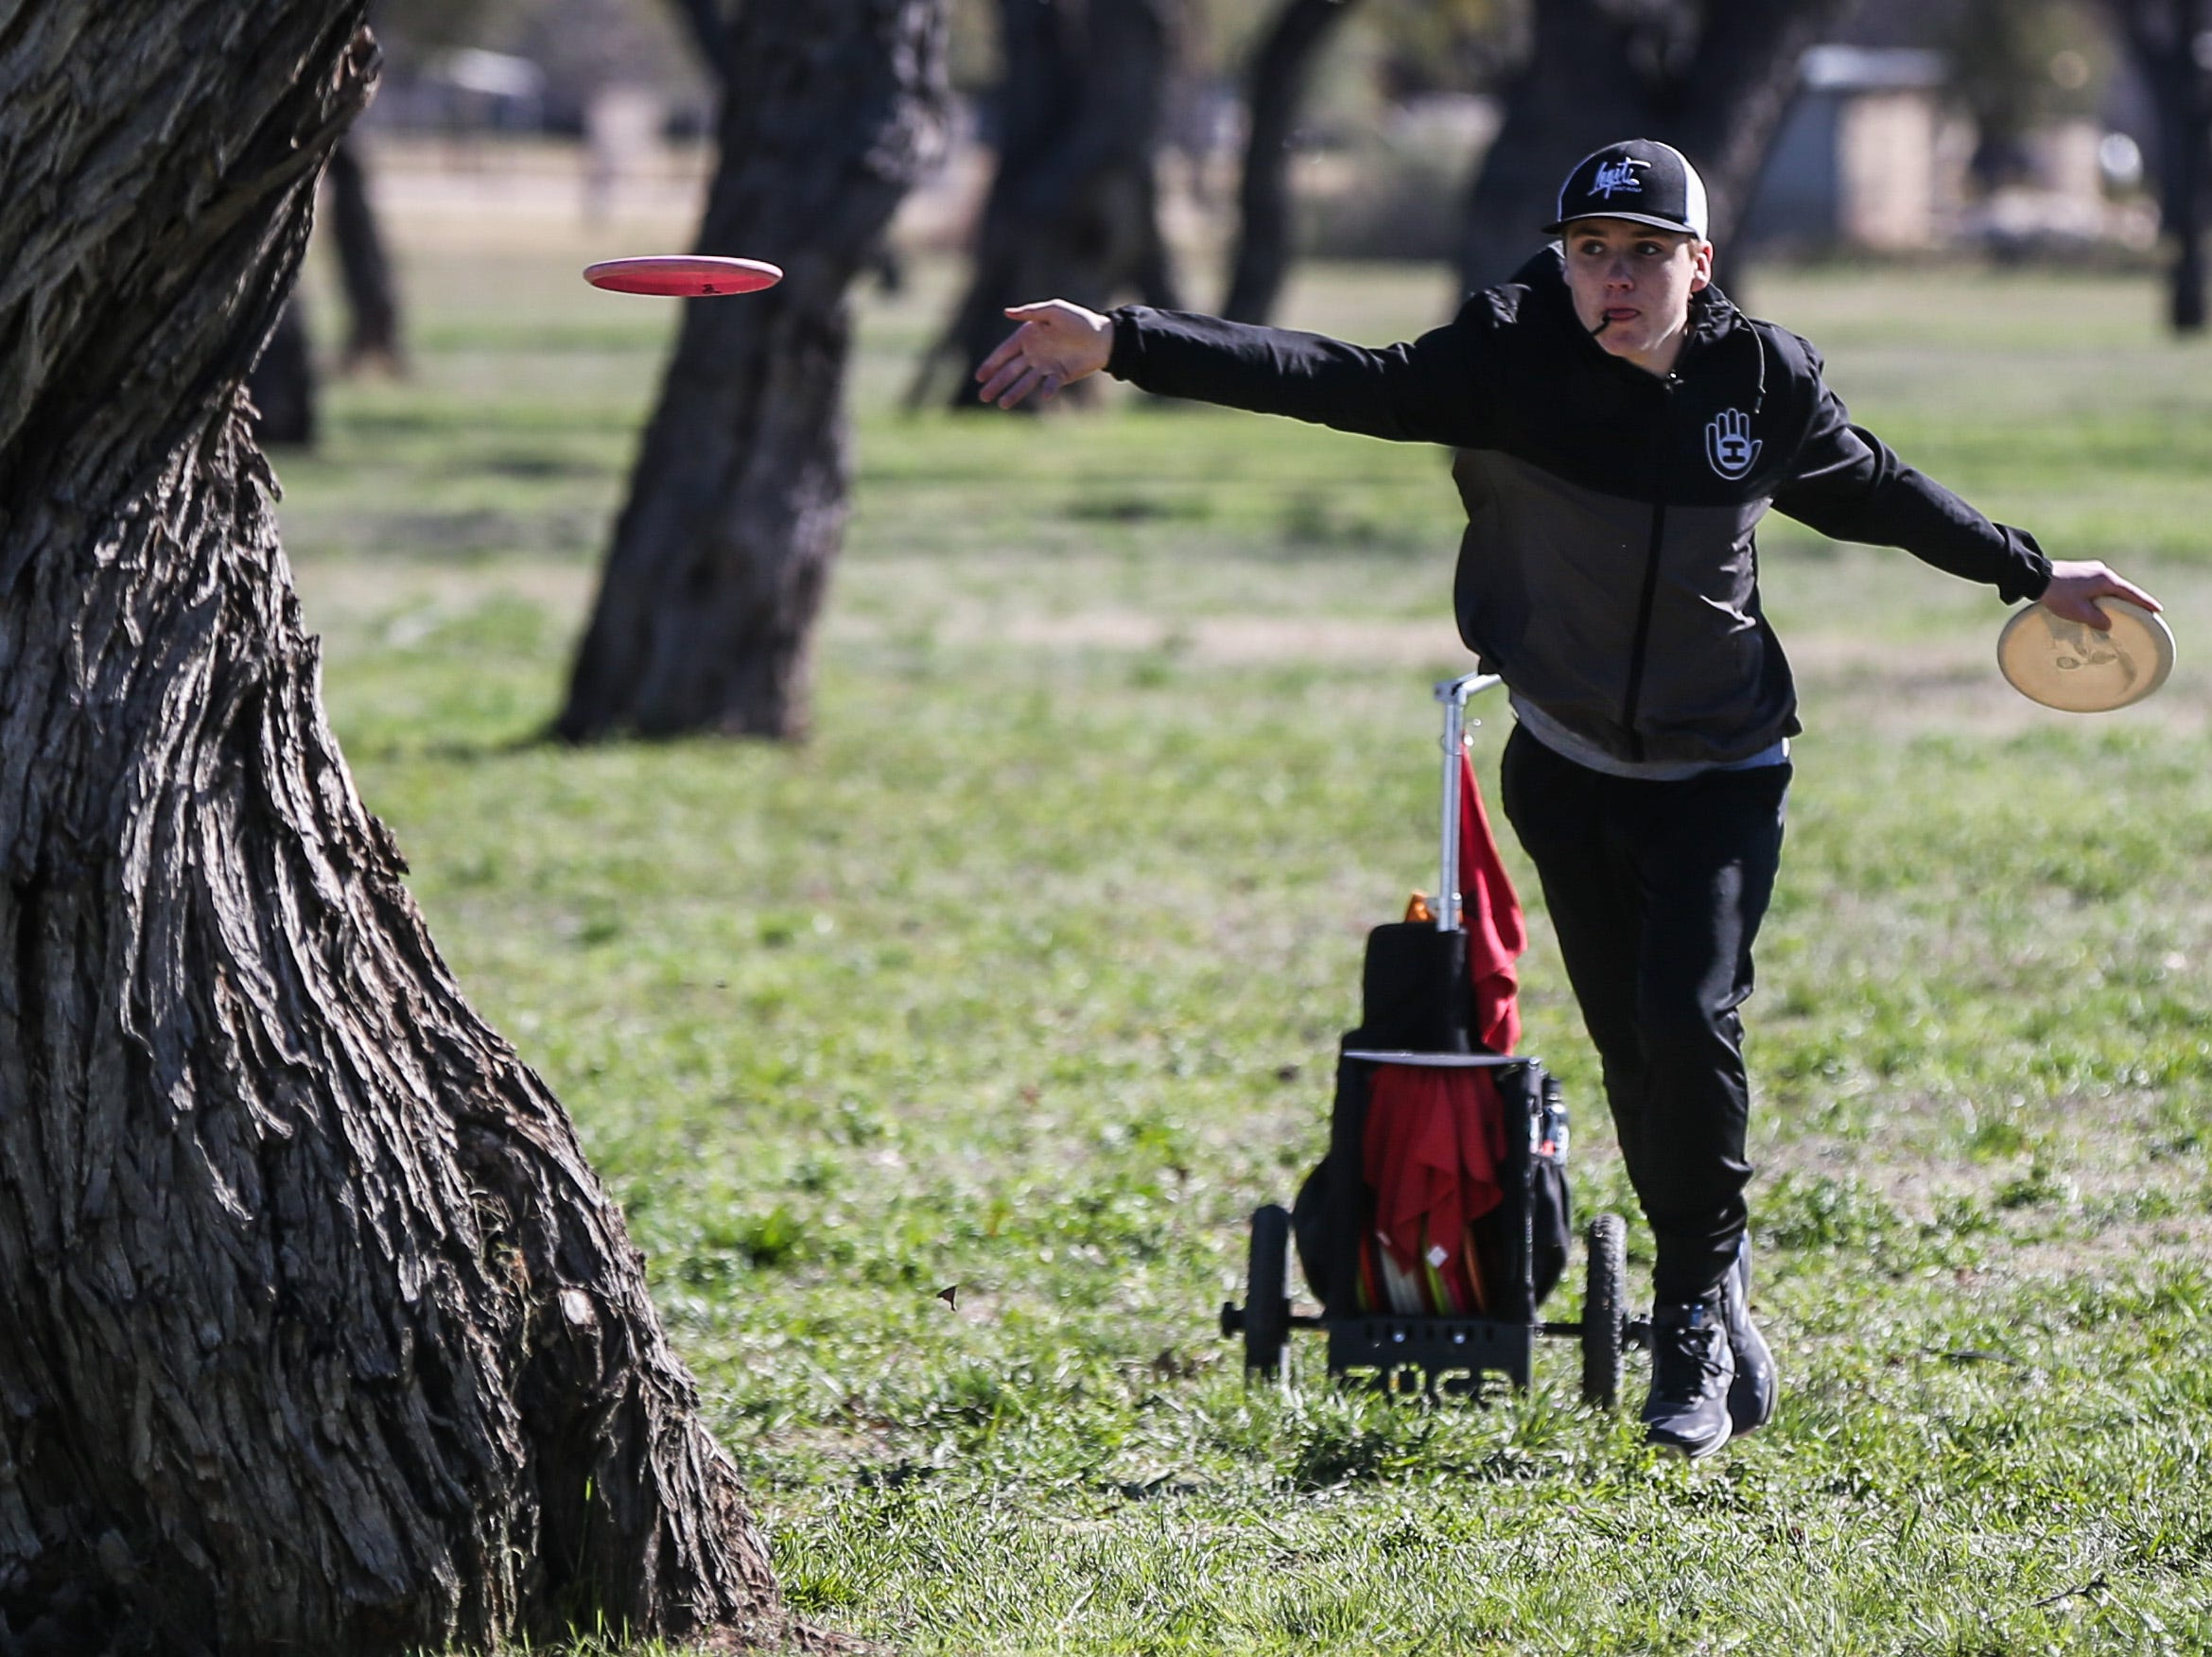 Bradin Balogh throws a disc during the Crush on the Concho tournament Saturday, March 9, 2019, at Middle Concho Park.